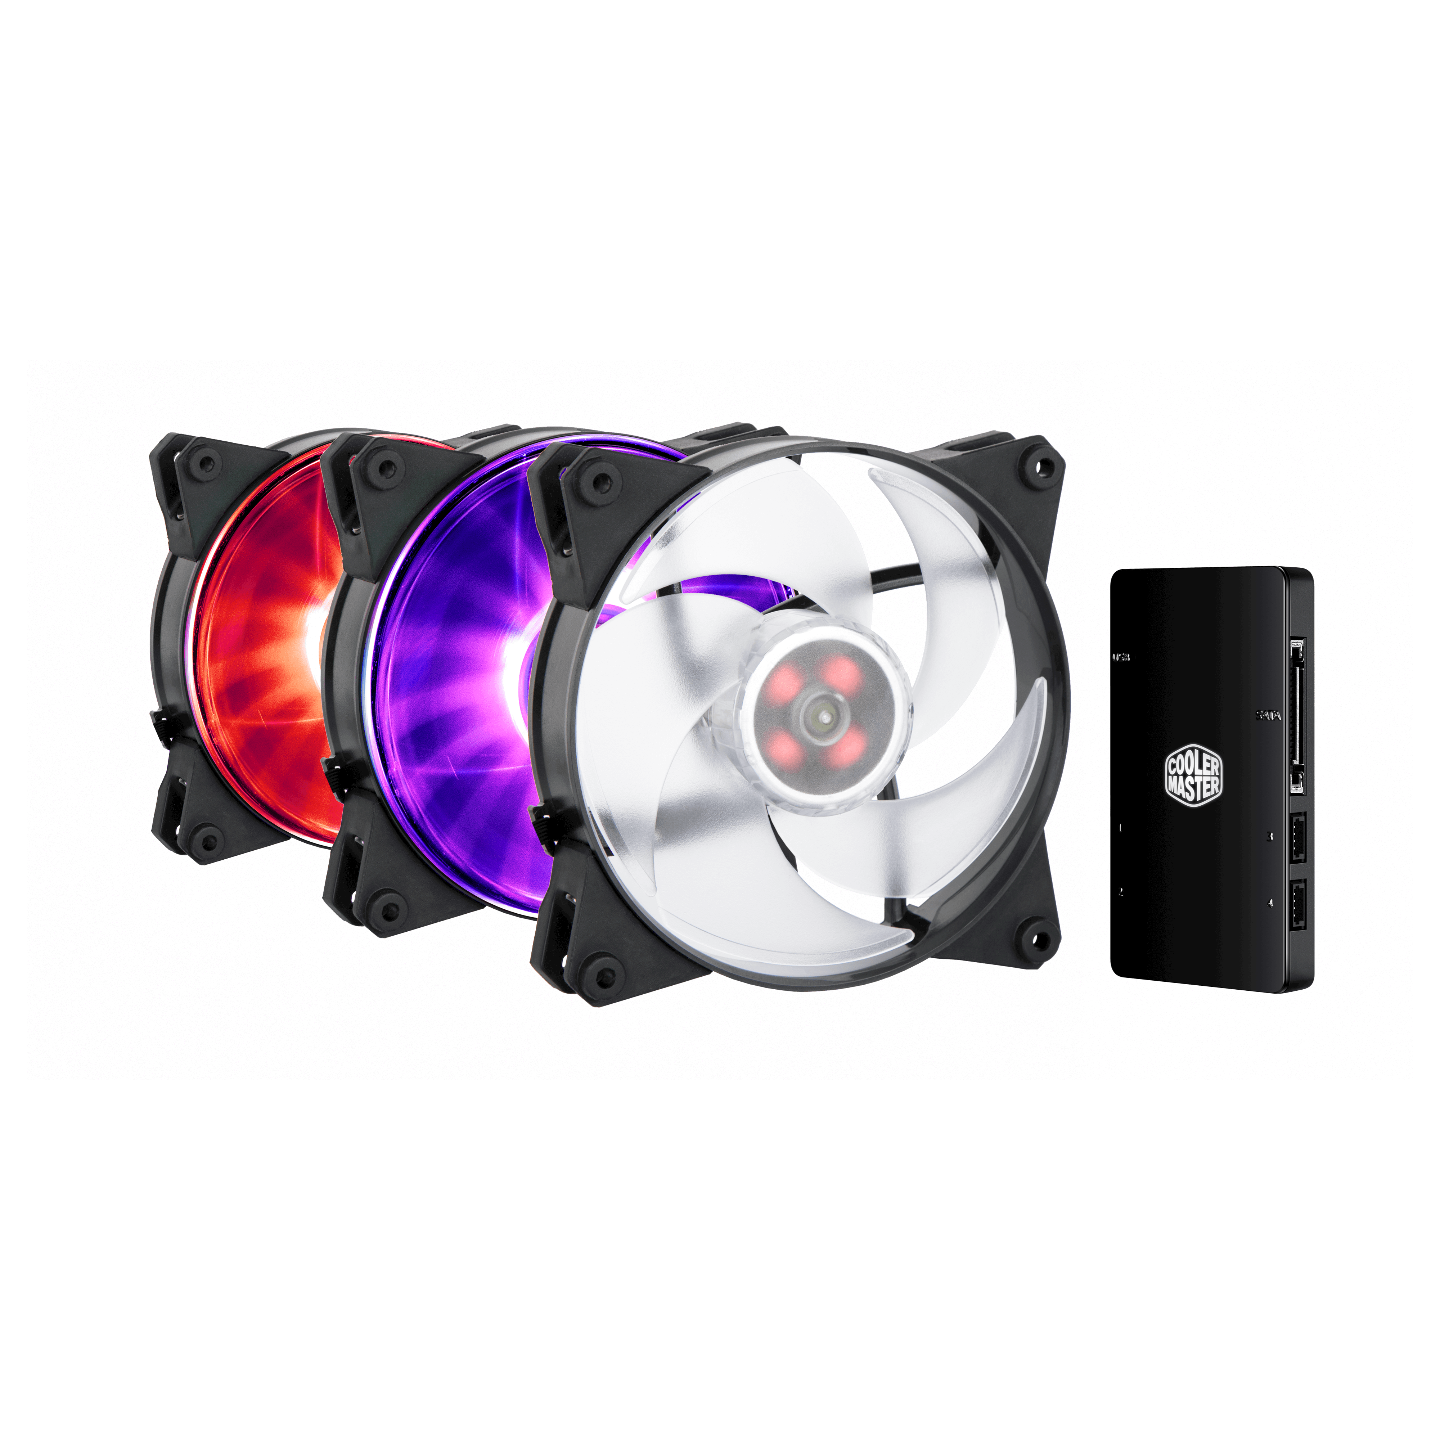 Coolermaster MasterFan Pro 140 Air Pressure RGB 3 in 1 with RGB LED Controller